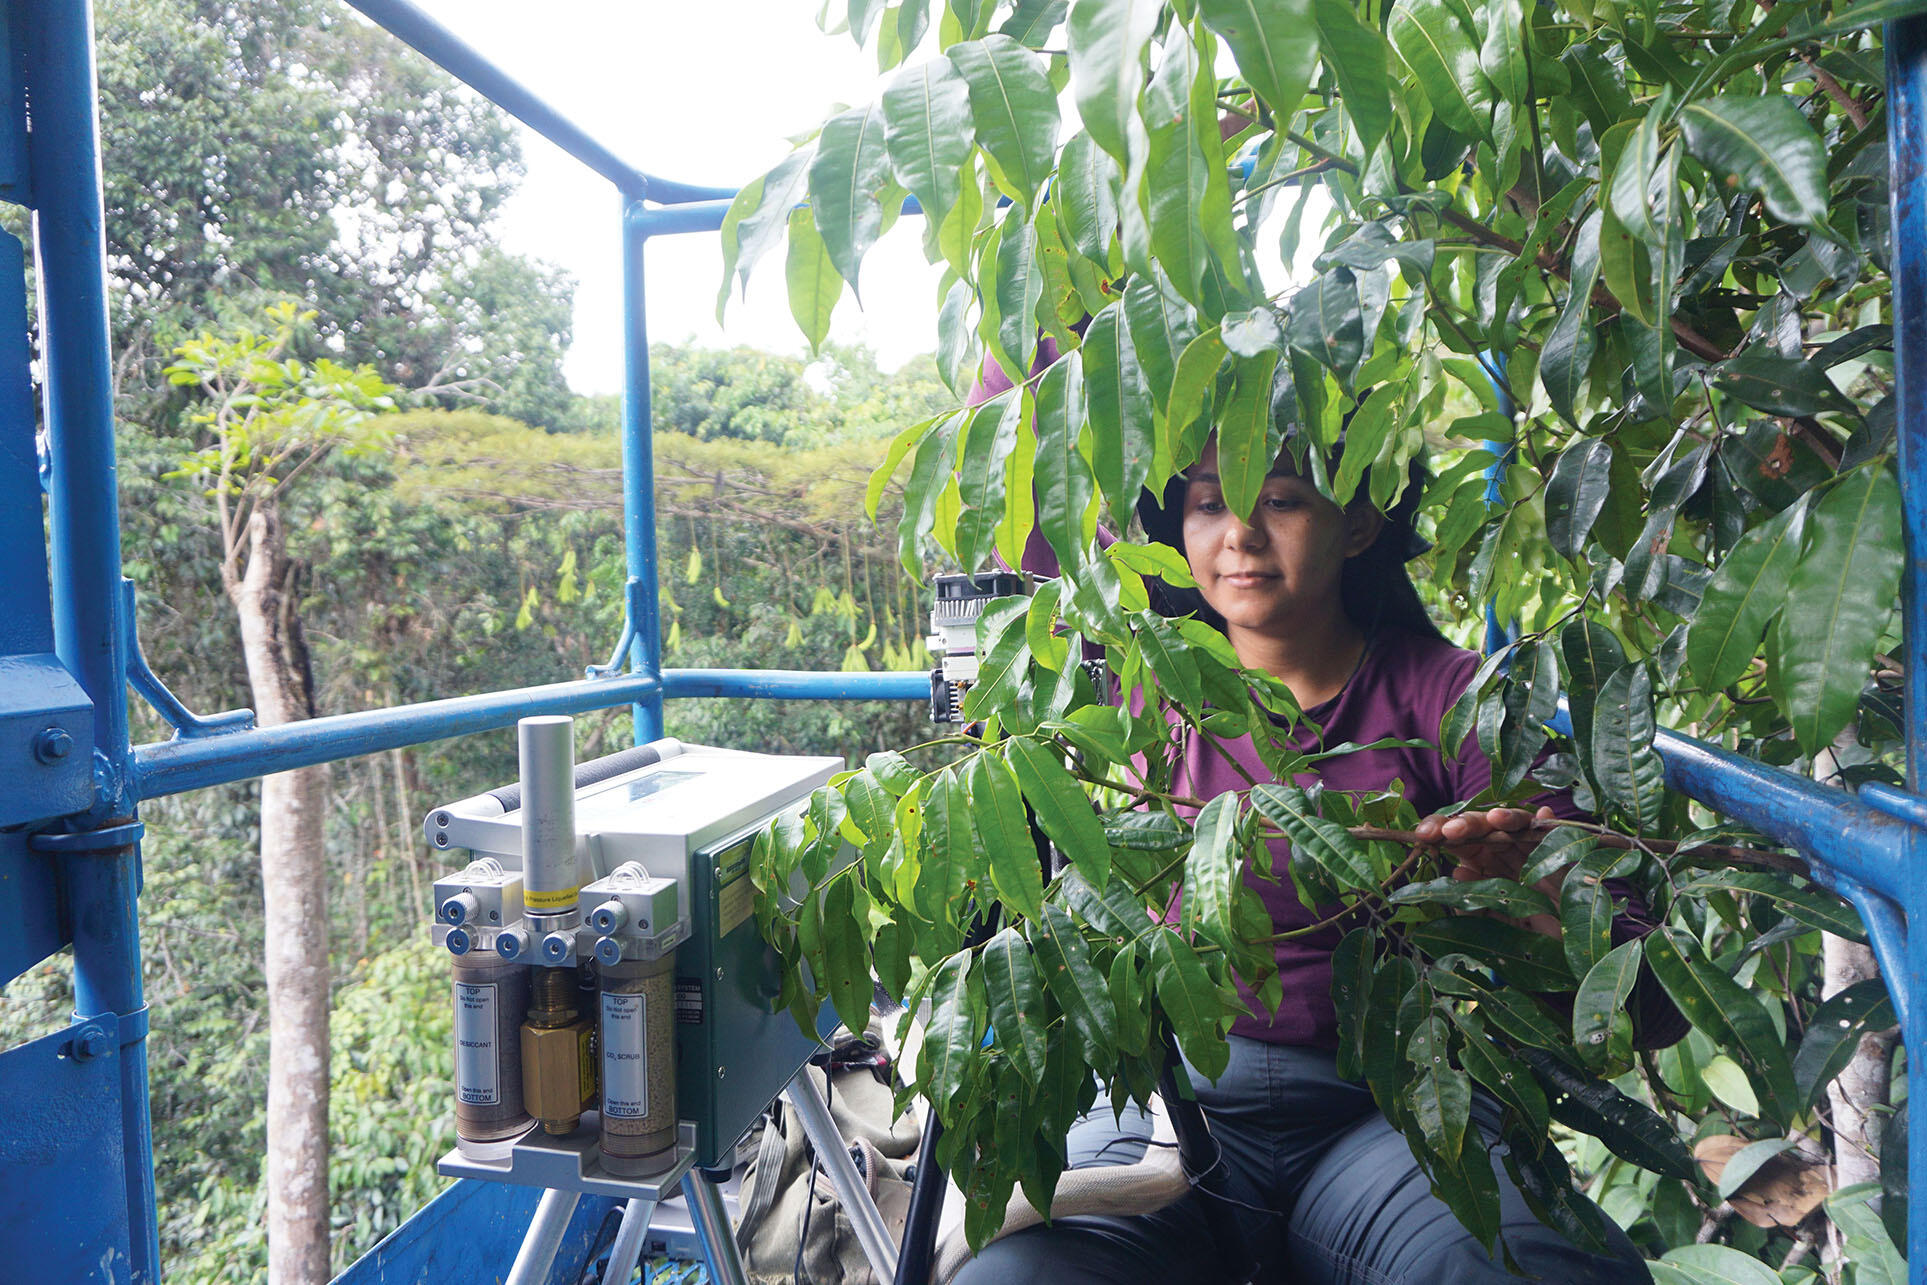 Graduate student Daisy Souza works in the lift basket among the leaves high in the rainforest canopy. (Photo courtesy of Bruno Oliva Gimenez.)